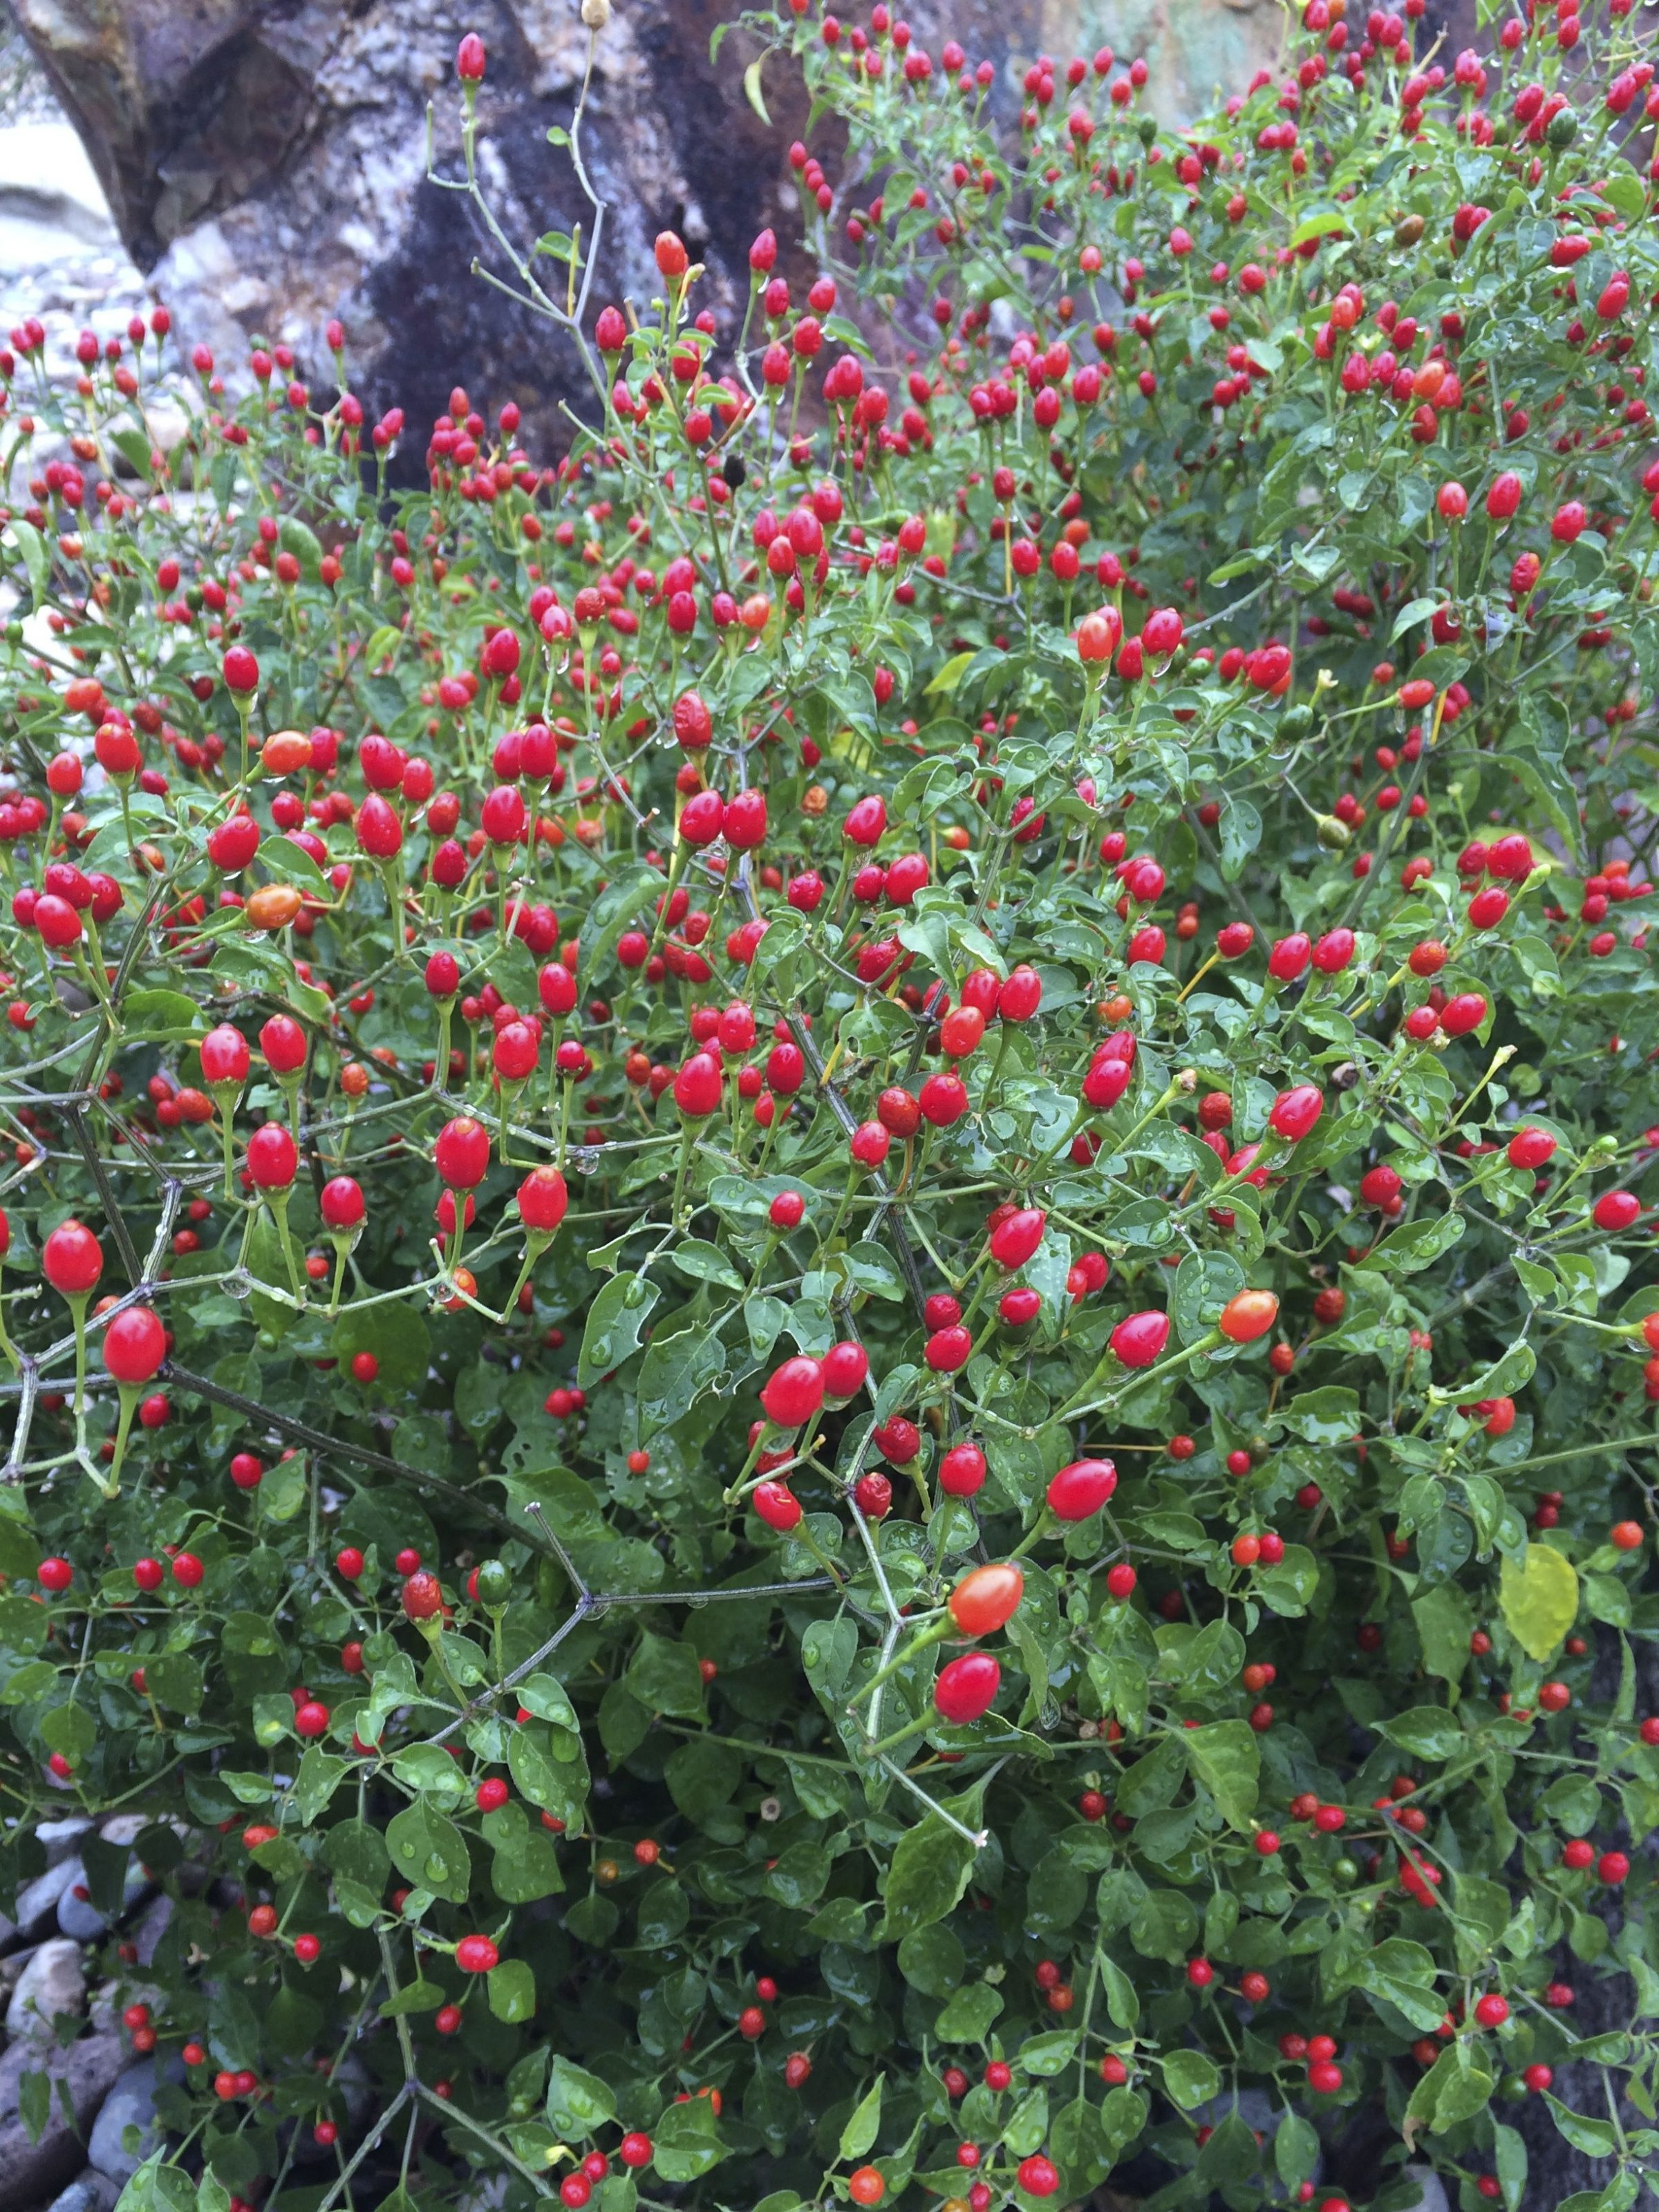 Chiltepin pepper from the wild, growing at Tohono Chul Park (Burgess photo)